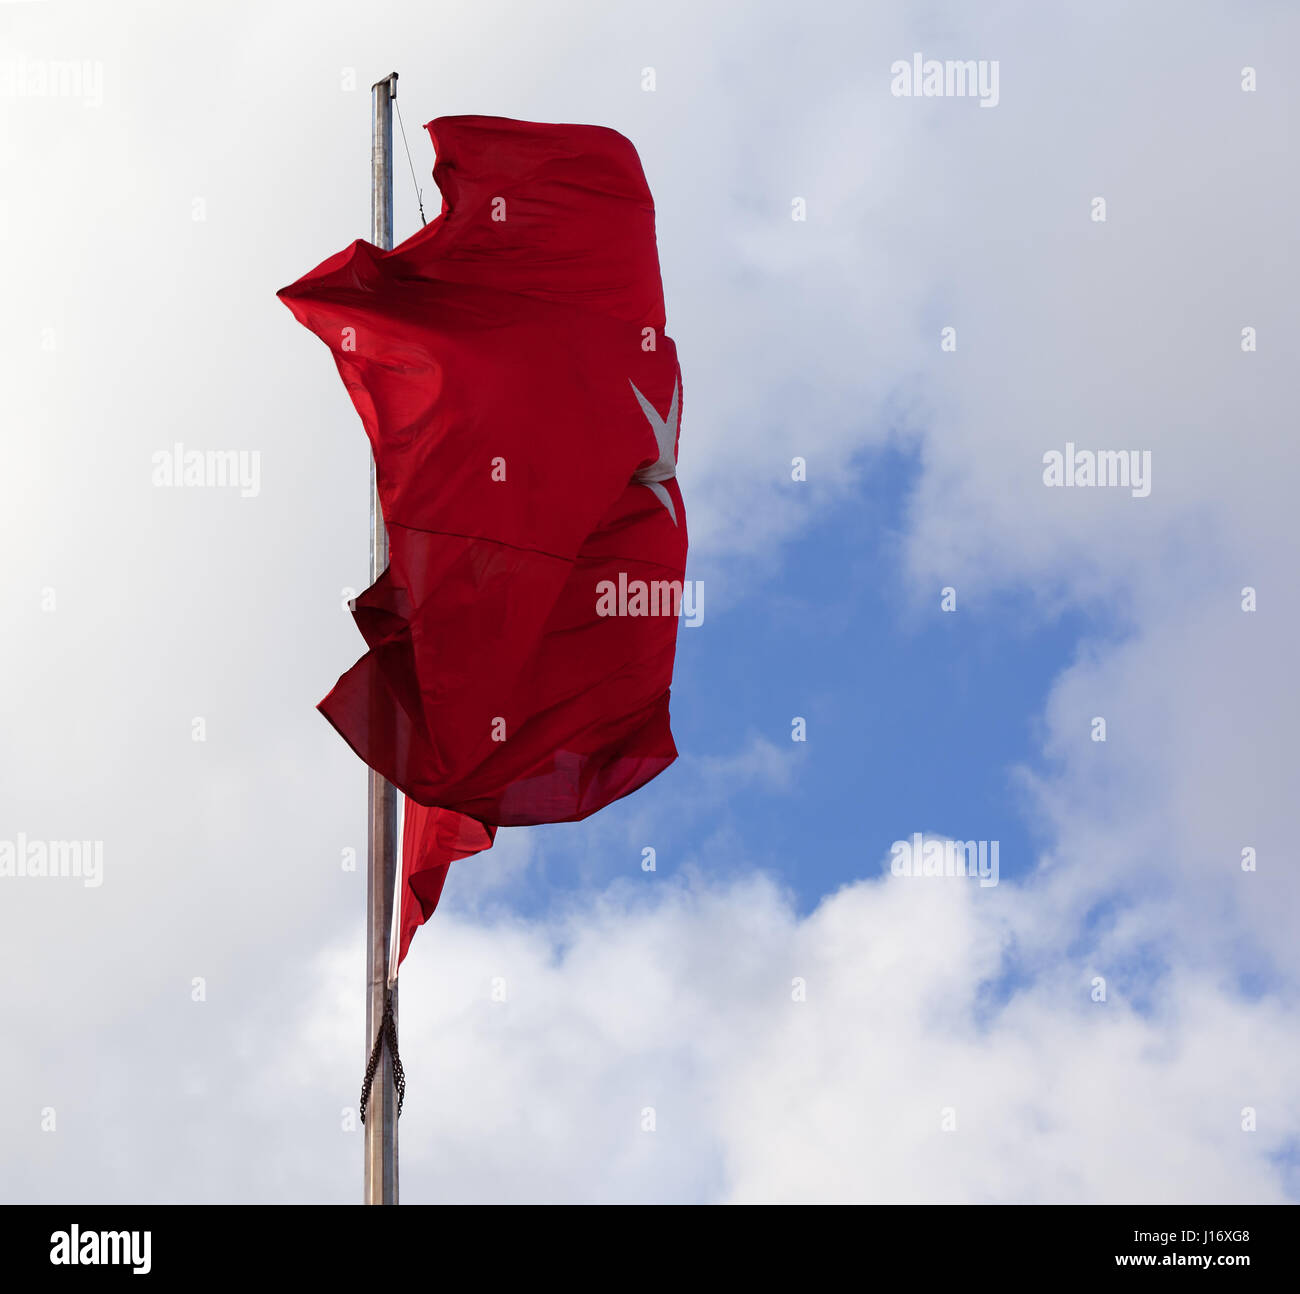 Turkish flag on flagpole waving in wind at sky with sunlight clouds - Stock Image